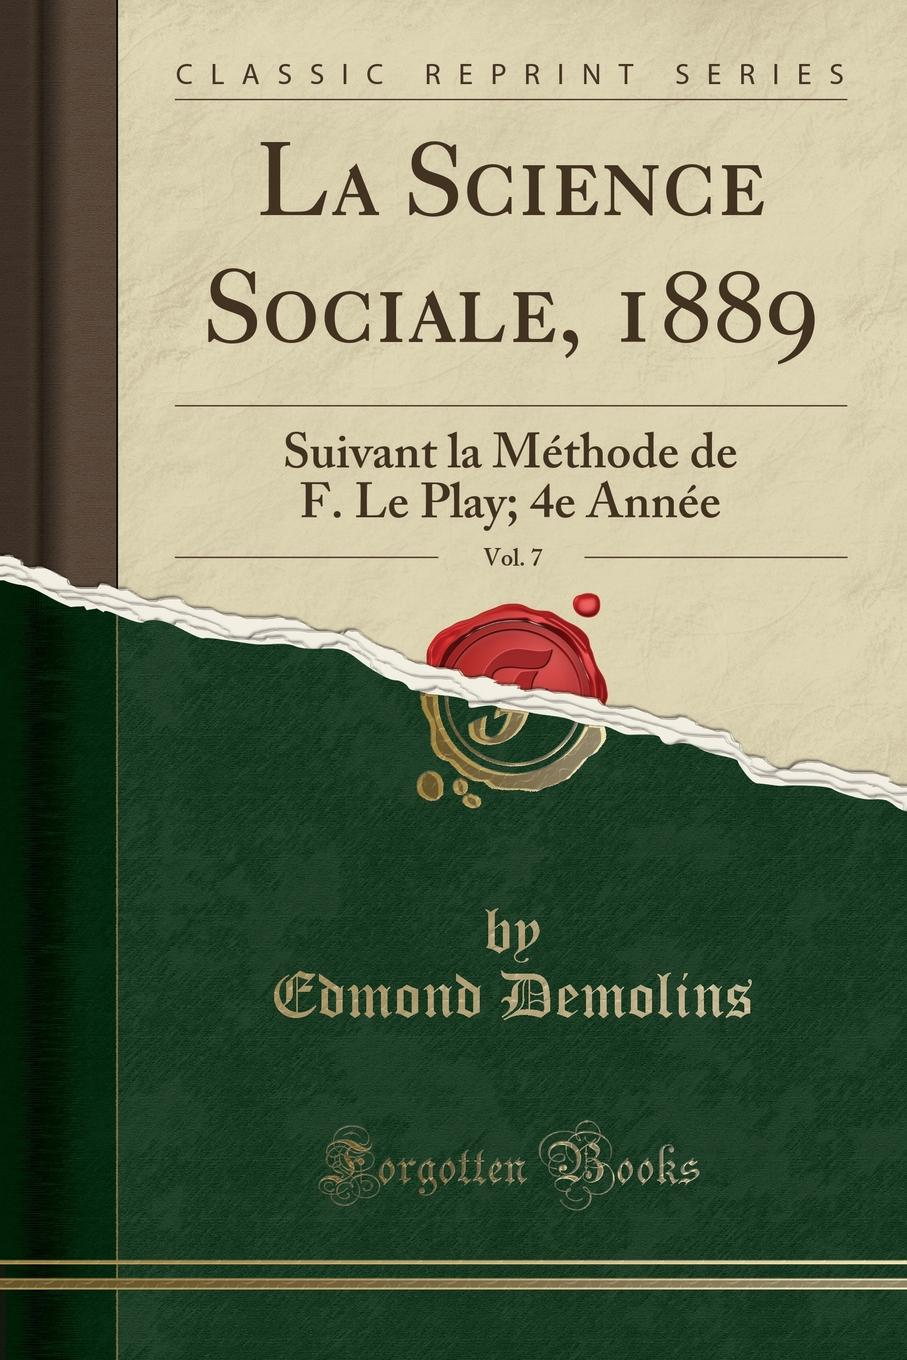 La Science Sociale, 1889, Vol. 7. Suivant la Methode de F. Le Play; 4e Annee (Classic Reprint) Excerpt from La Science Sociale, 1889, Vol. 7: Suivant la MР?thode...